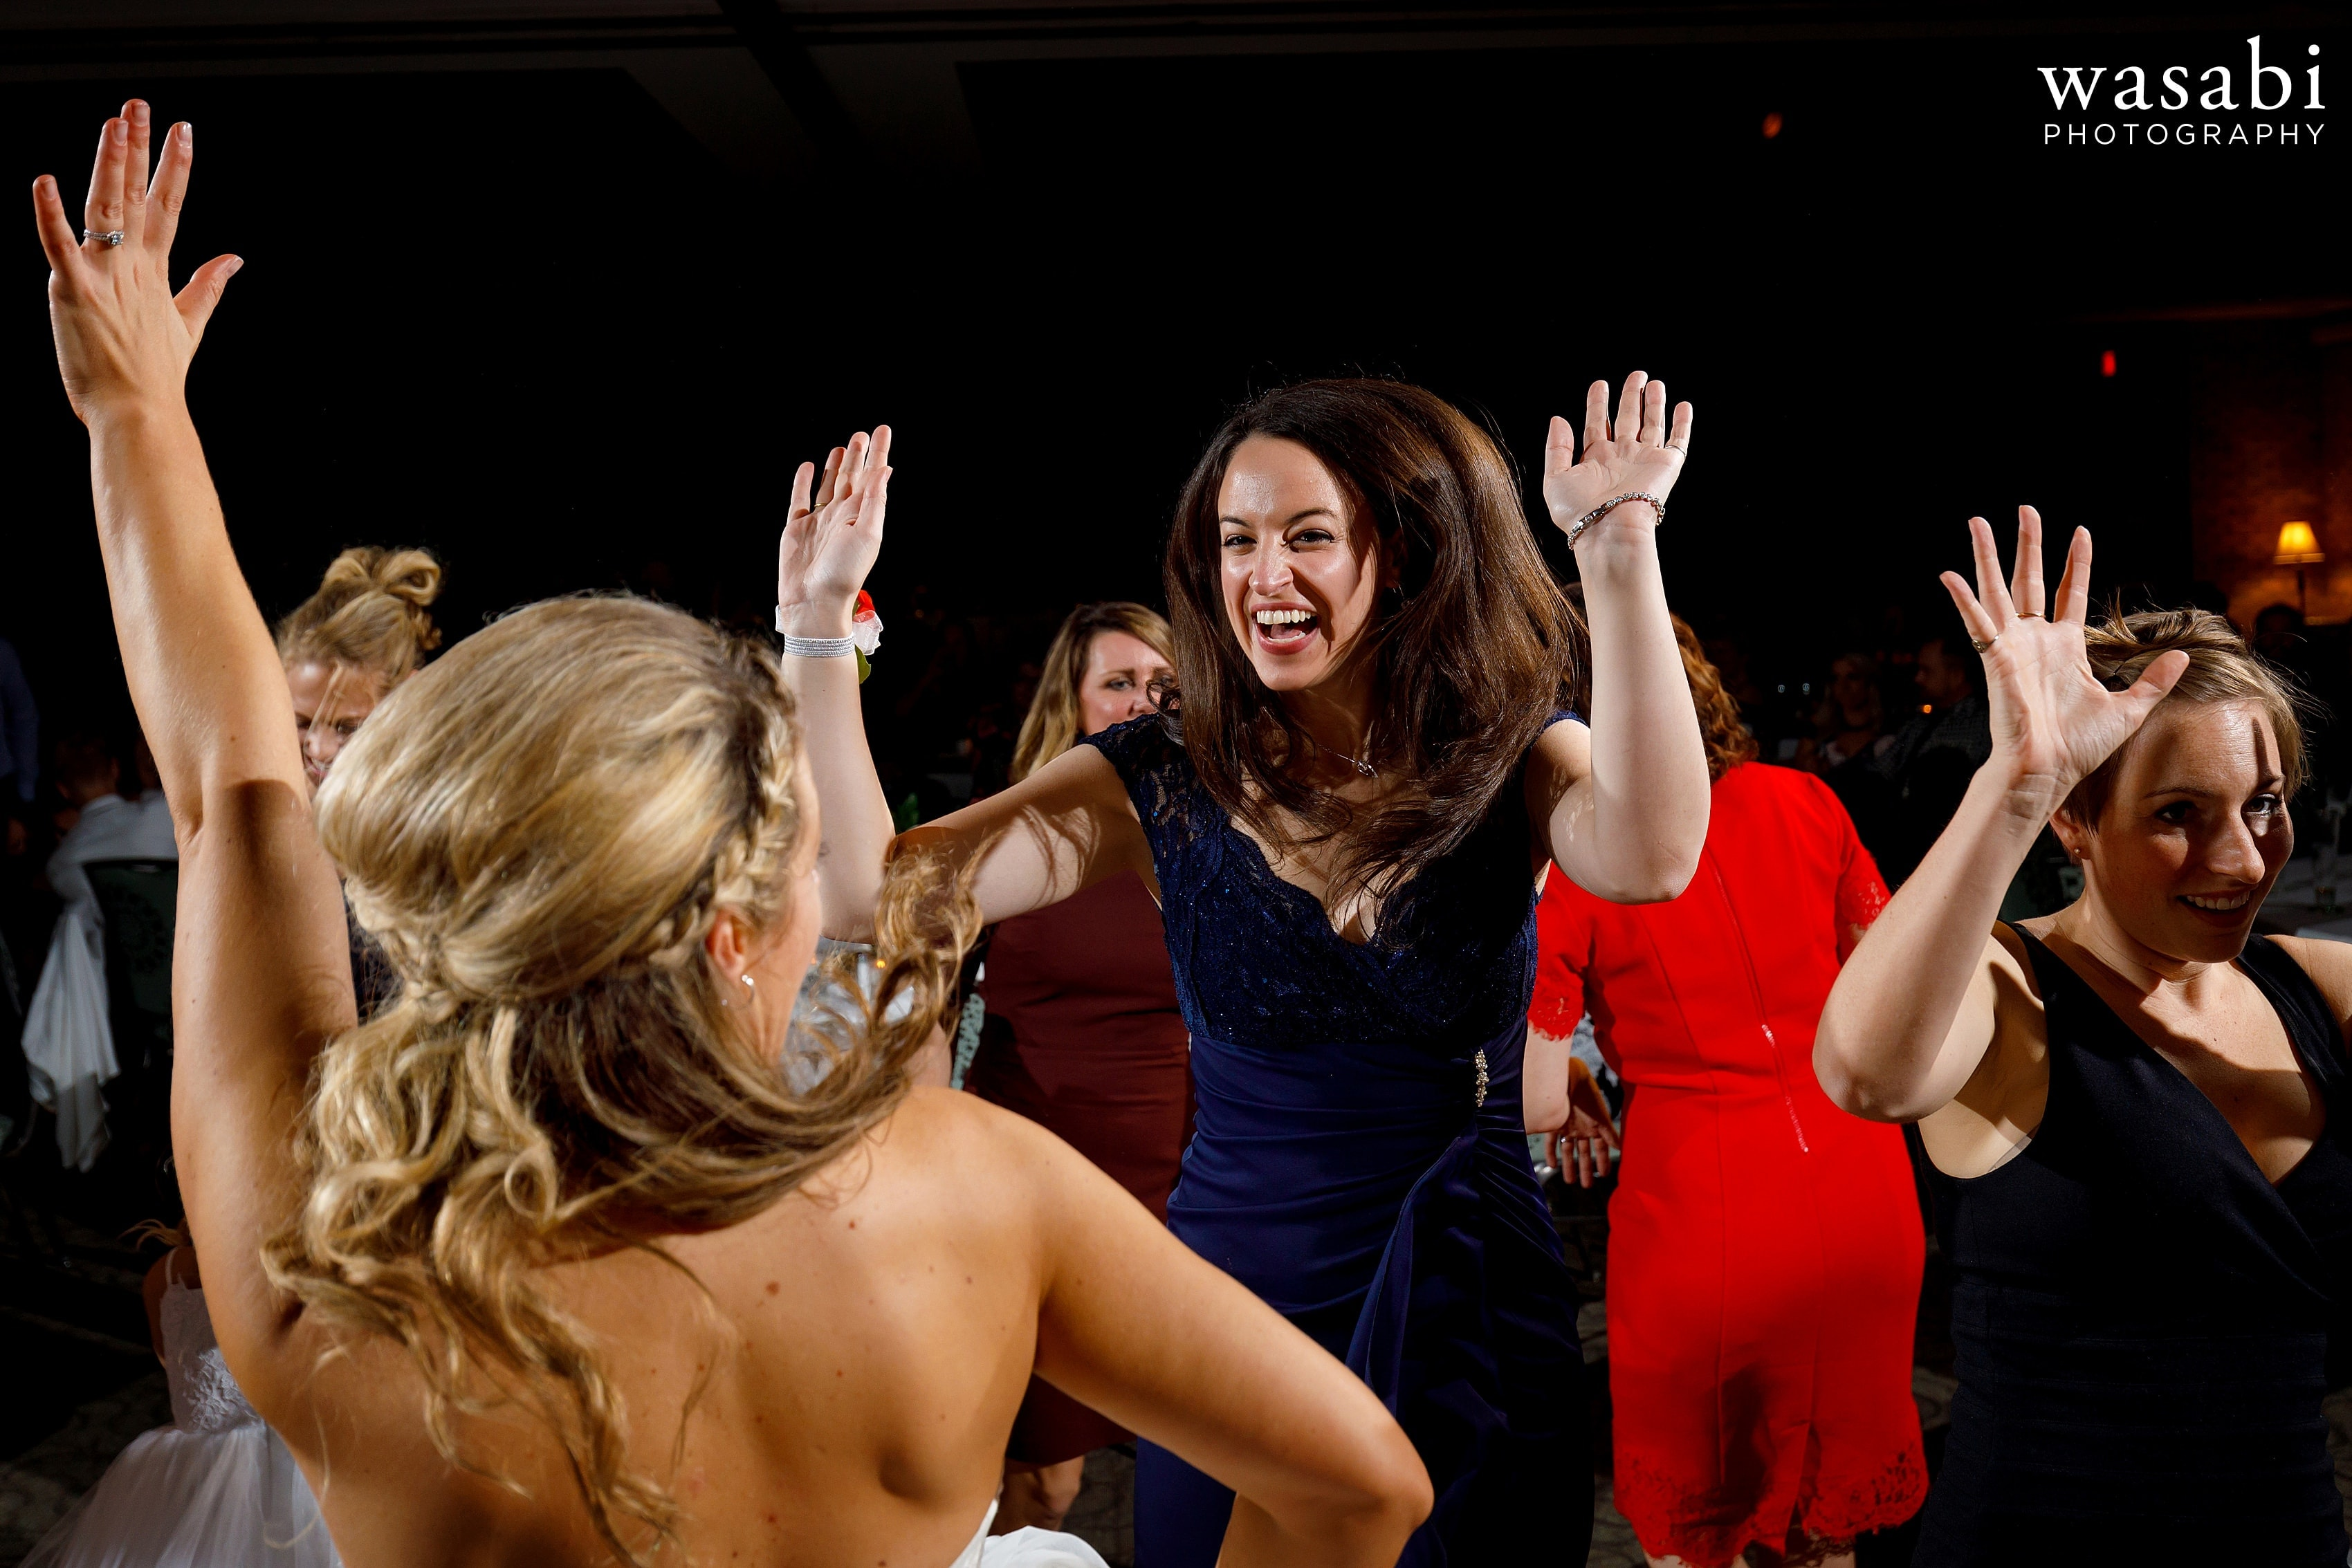 bride dances with guests during their Eberhard Center wedding reception